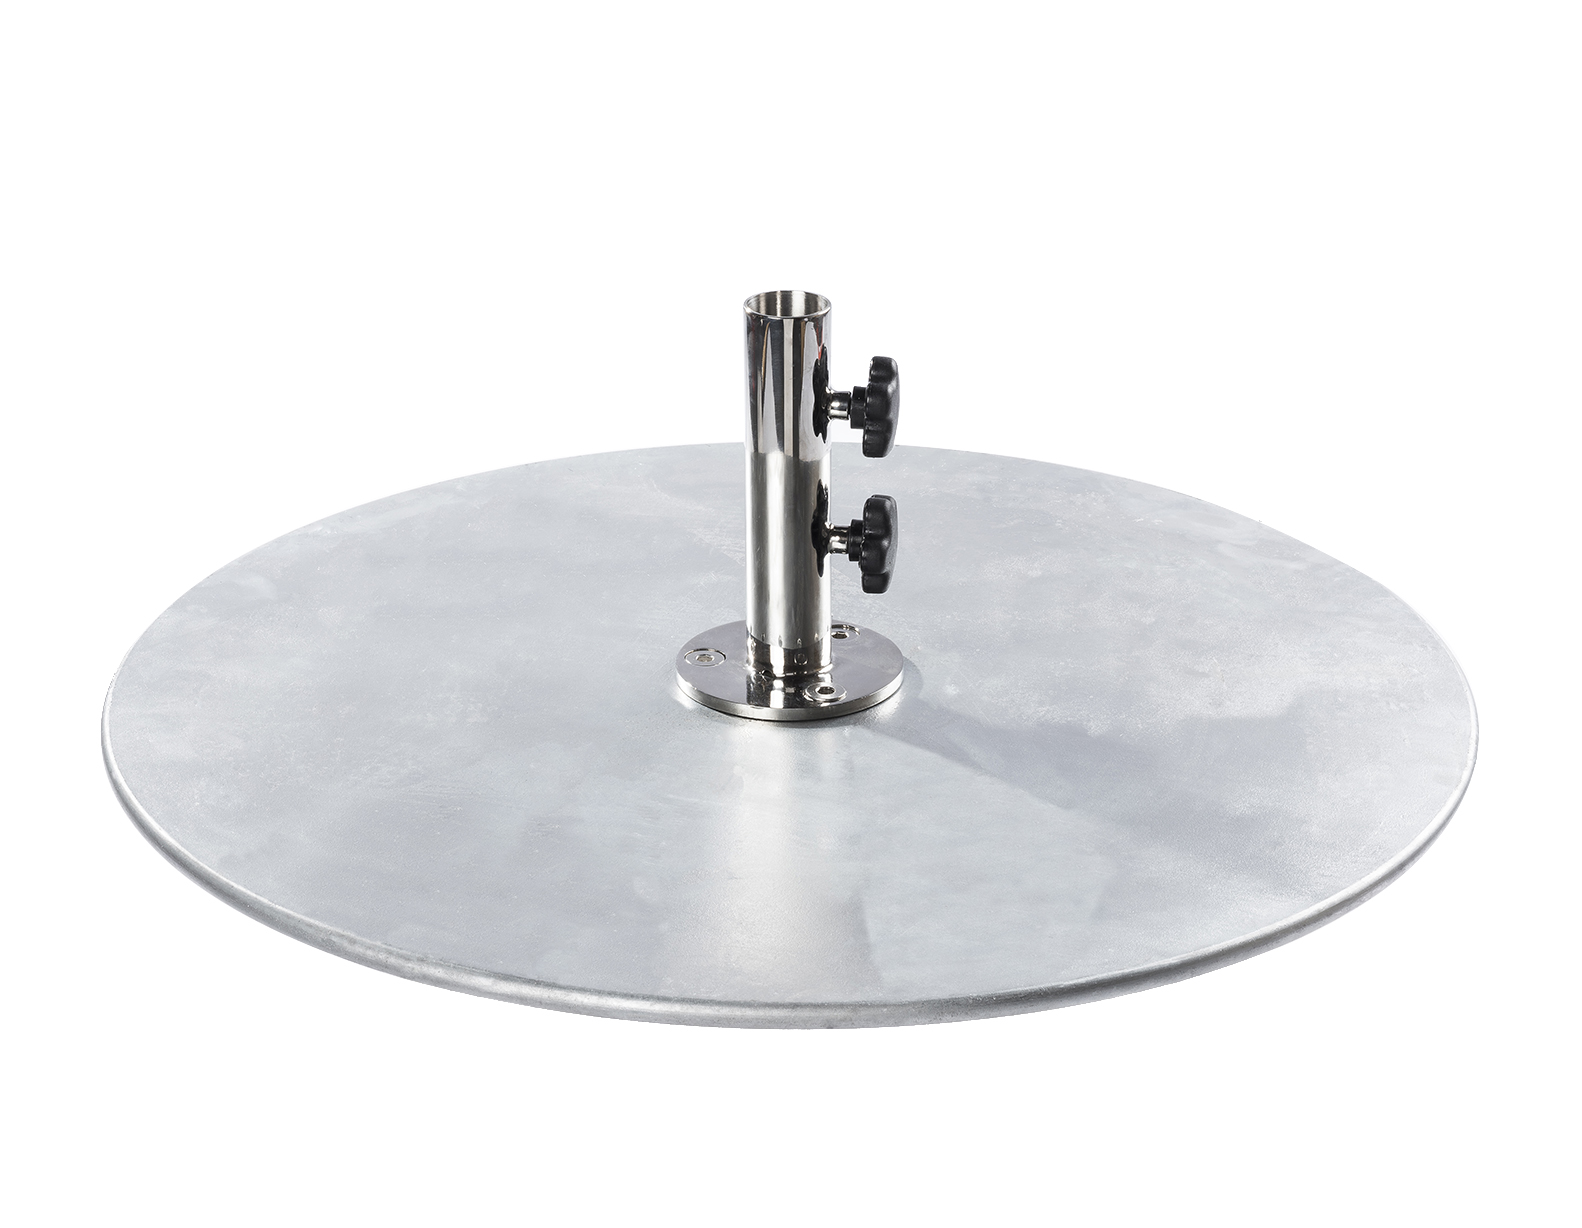 100 POUND GALVANIZED STEEL PLATE BASE $319.00 Click Here to See Spec Sheet